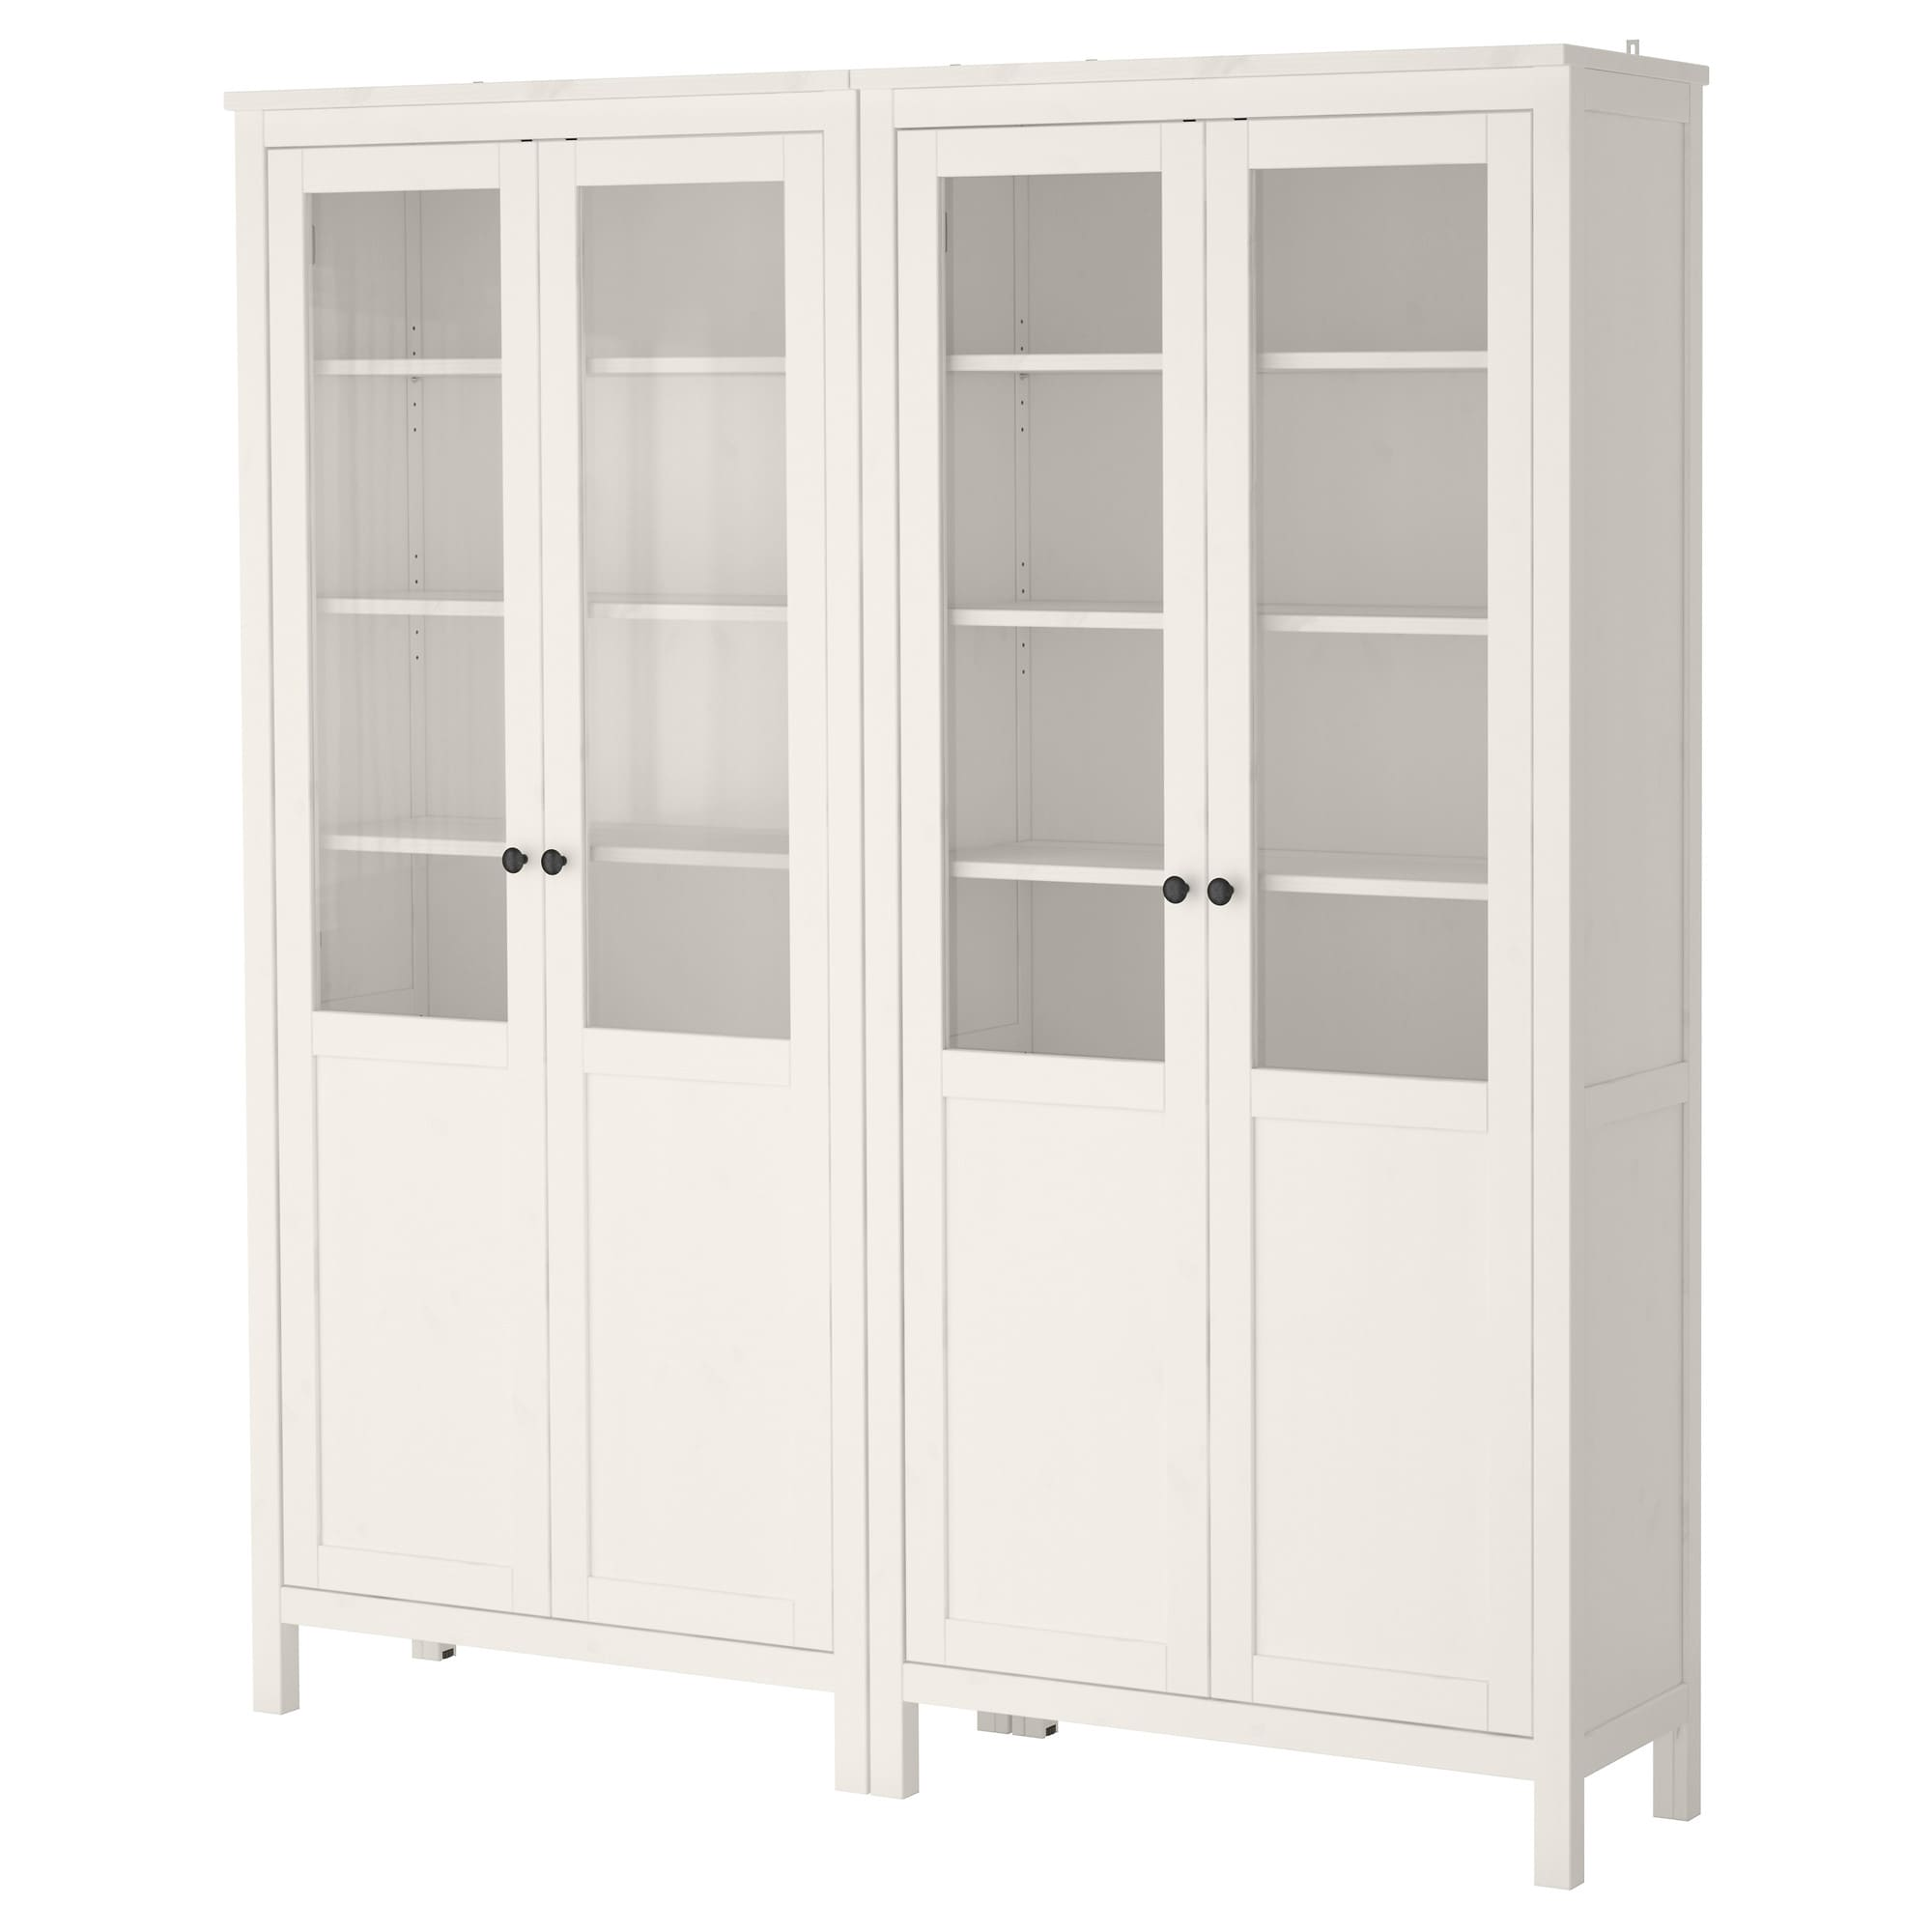 Furniture Home Furnishings Find Your Inspiration Ikea Kitchen Storage Ikea Kitchen Storage Cabinets Kitchen Cabinet Storage